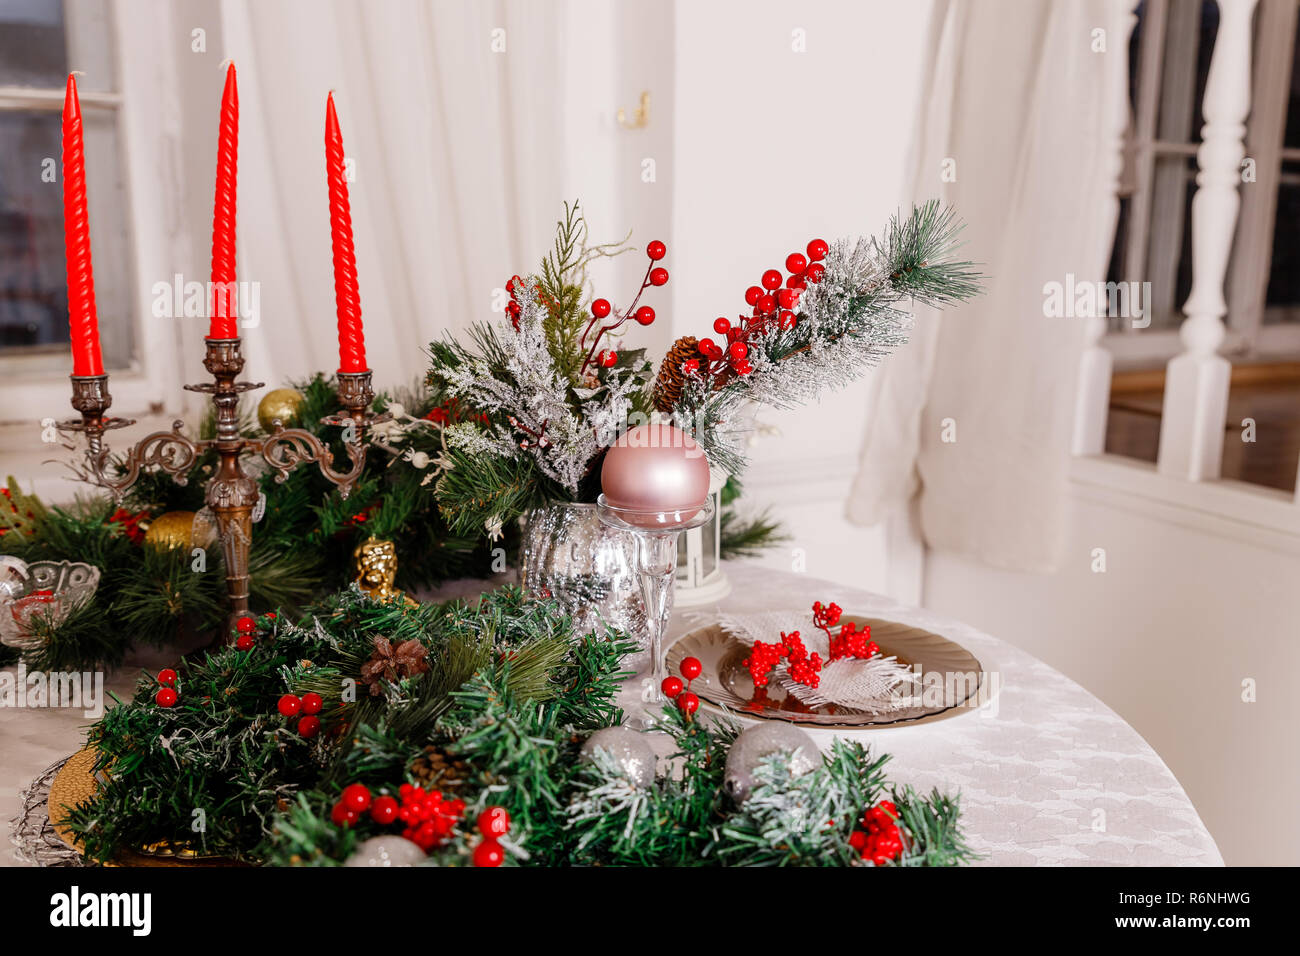 Christmas Family Dinner Table Concept Table Setting For New Year Dinner Decorations Candles And Lanterns White Tablecloth Living Room Decorated With Lights And Christmas Tree Holiday Setting Christmas Red Candles Stock Photo Alamy